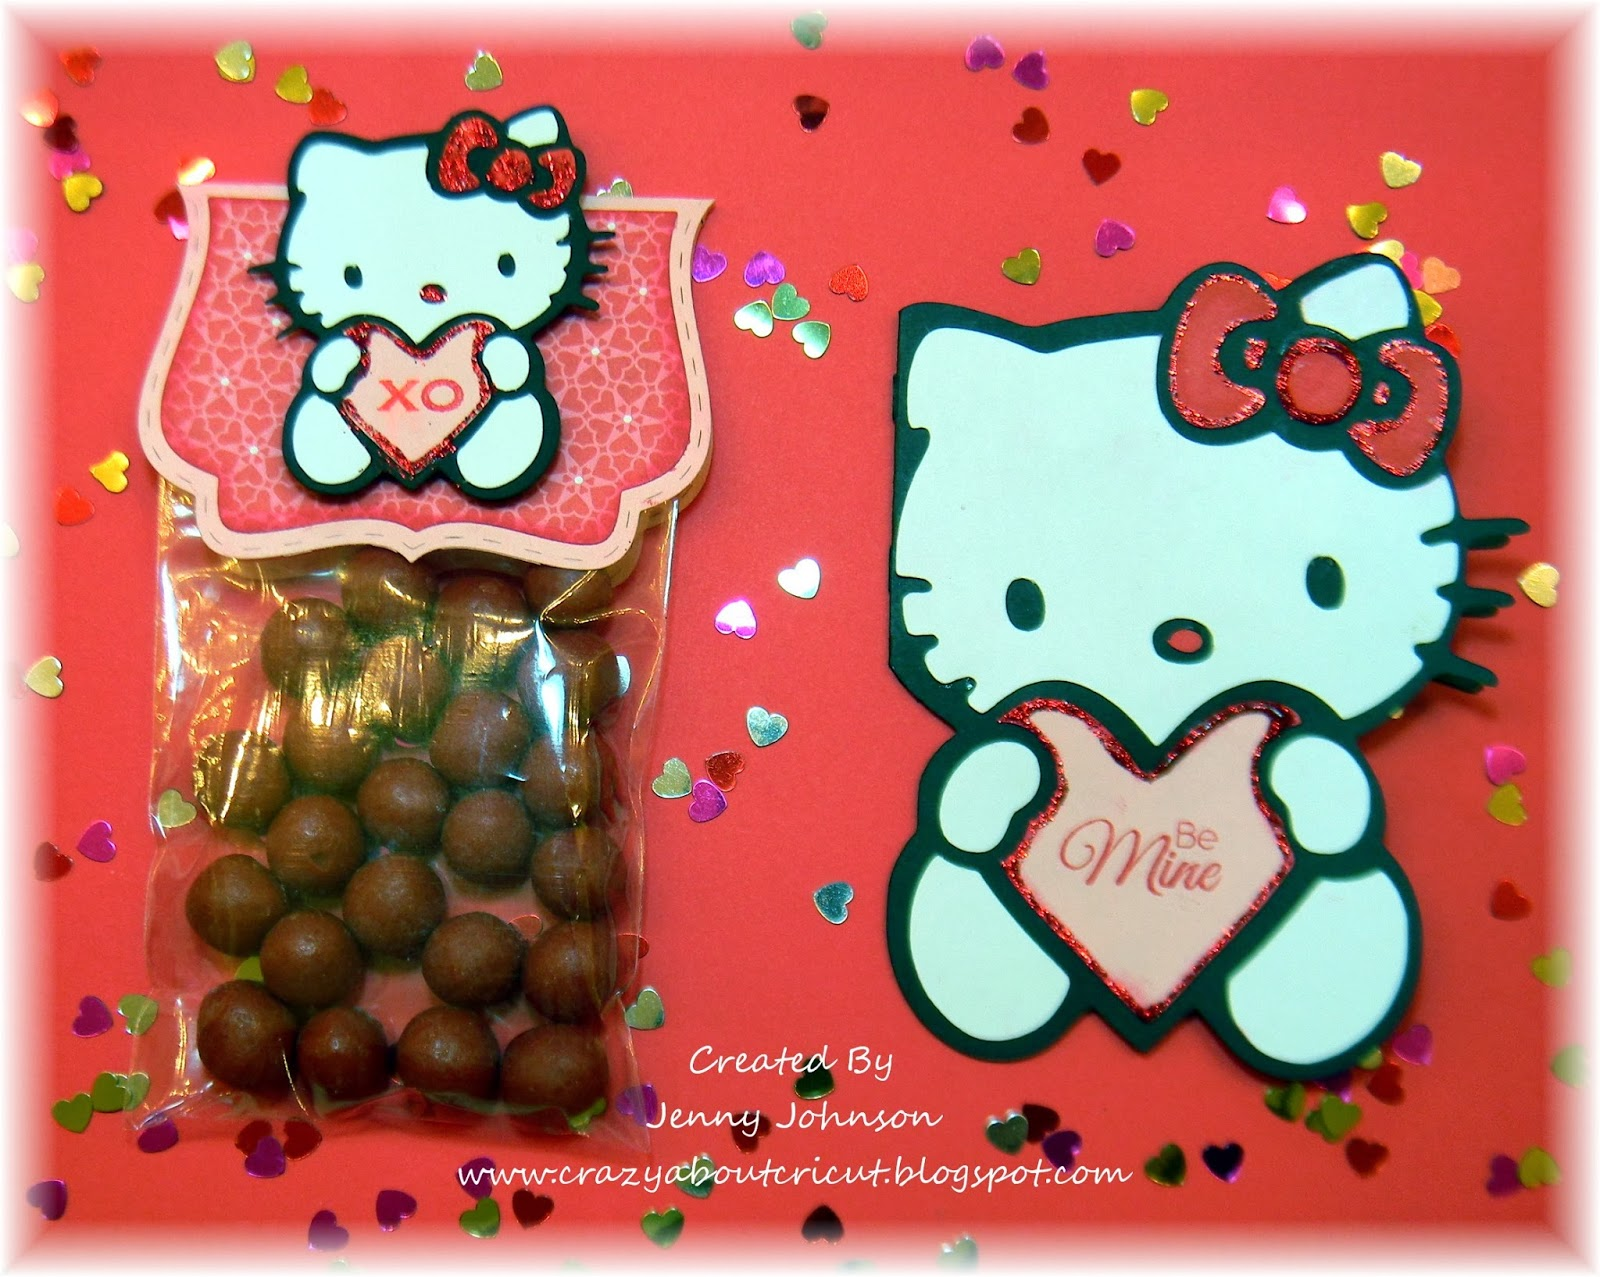 Crazy about cricut hello kitty blog hop hello kitty greetings cricut cartridge jaded blossom simple sayings valentine edition stamp set fancy topper die 3x4 inch bags ranger red stickles m4hsunfo